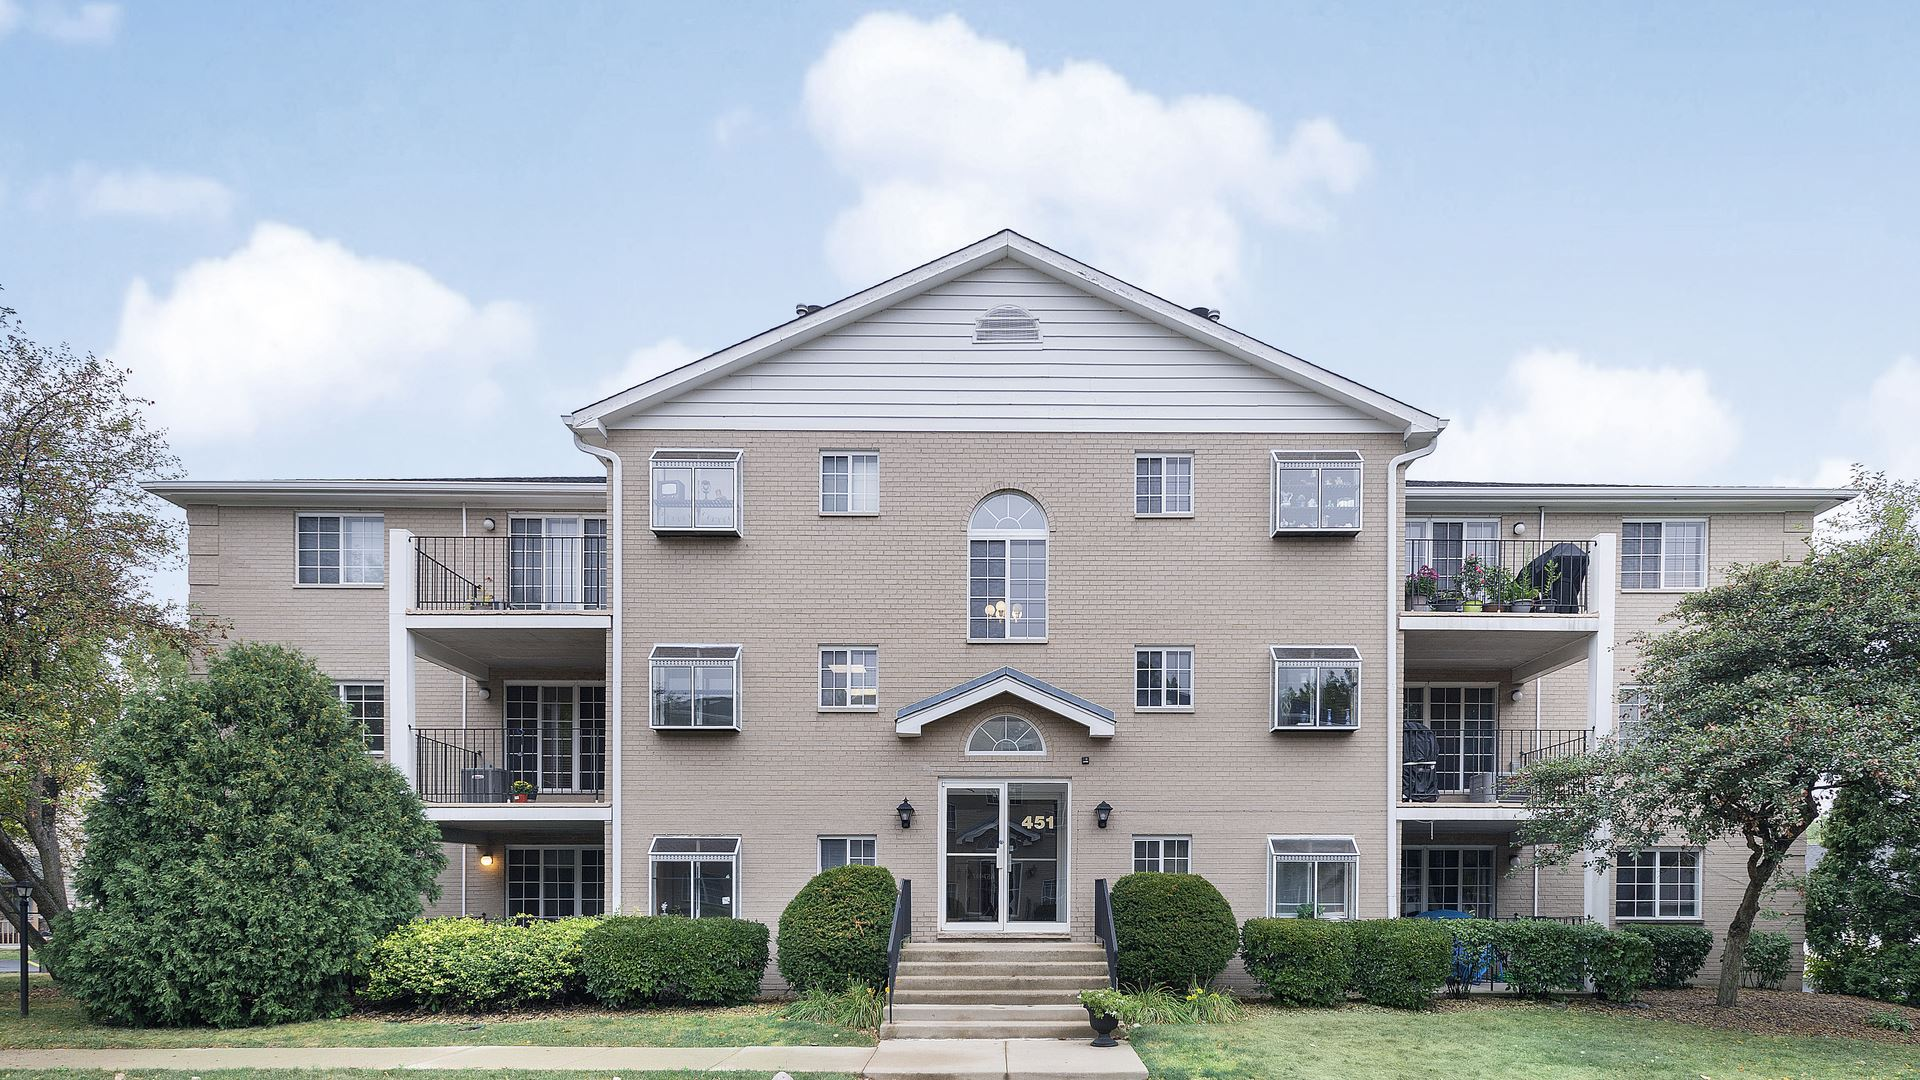 451 Valley Drive #201, Naperville, IL 60563 - #: 10692417